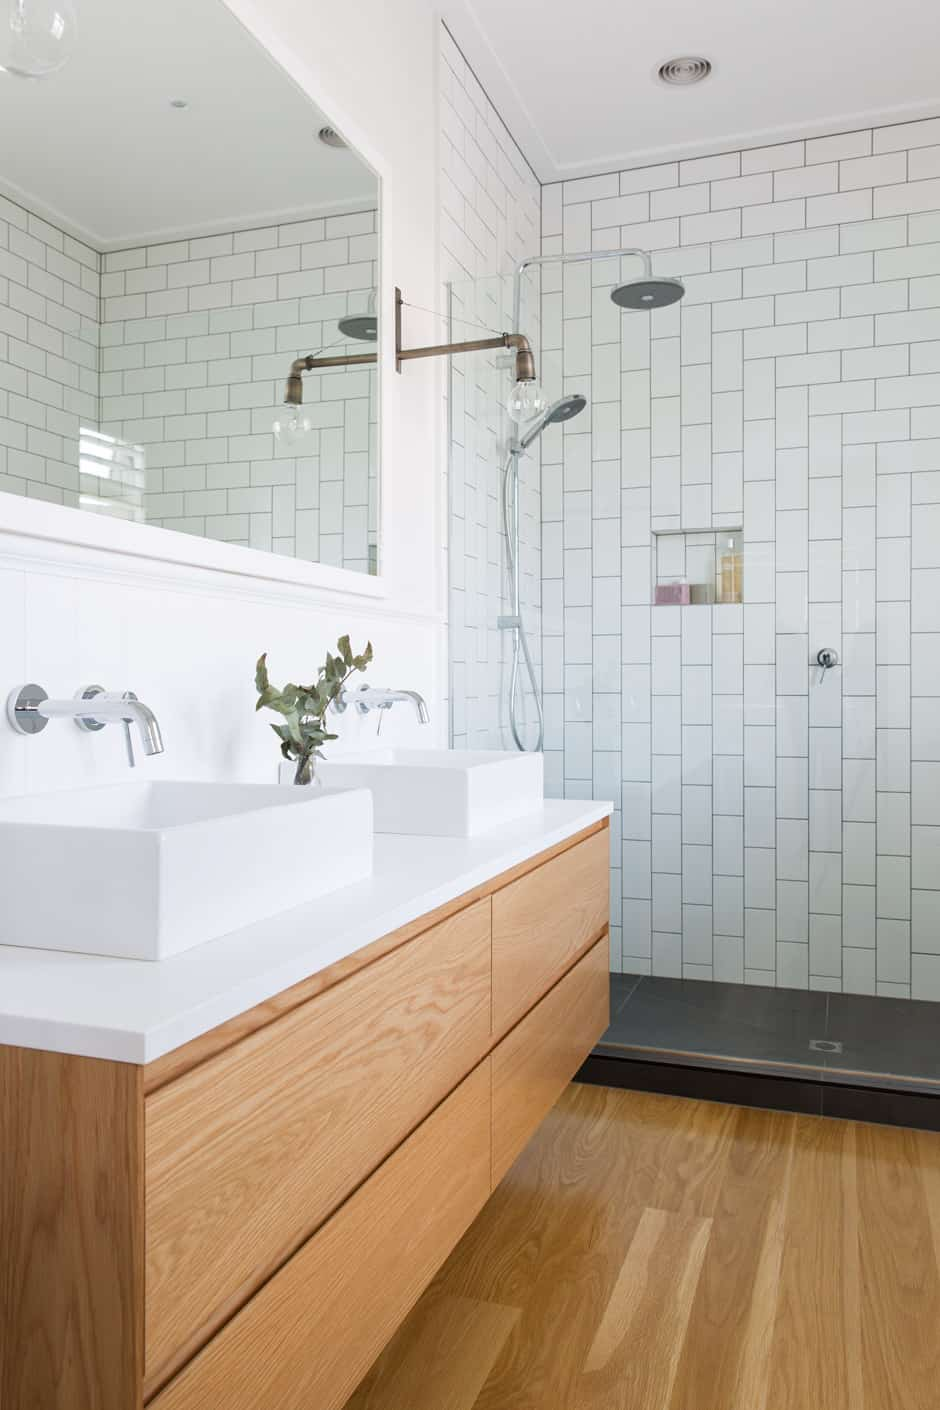 BATHROOMS American oak floorboards feature throughout the house, including in the main bathroom (opposite) and ensuite (below right), where wall lights from Father Rabbit lend an industrial vibe. BEDROOMS A Fog Linen garland from Father Rabbit prettifies the wall above the guest bed (top left), while the special finds in the baby's room include a rug by Jamie Kay (above) and a customised to-scale print of newborn Lucia from The Birth Poster (below left).